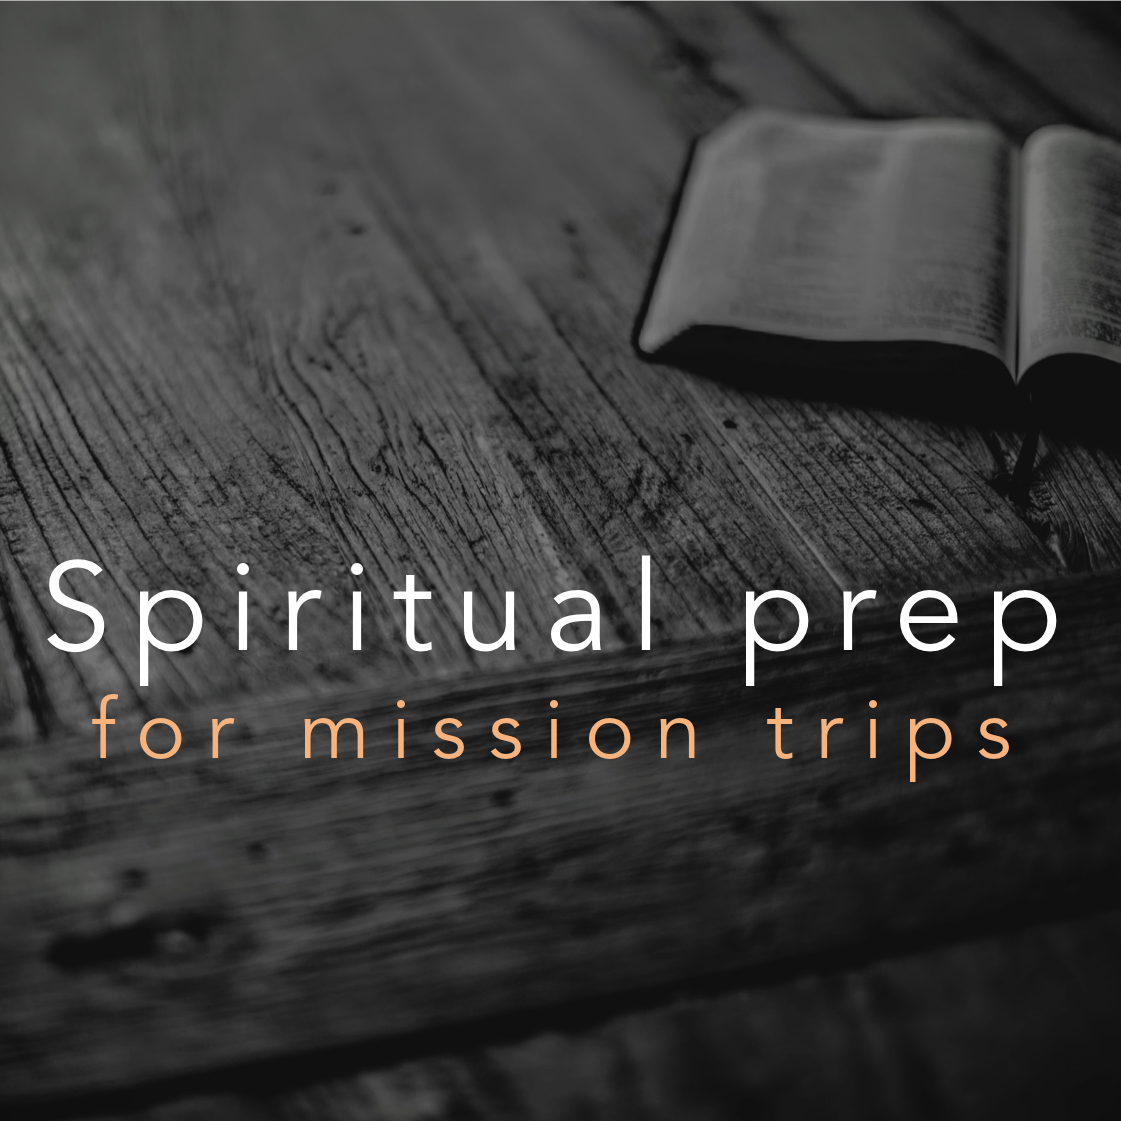 Mission Trip Quotes Spiritual Prep For Your International Mission Trip  Mission Trips